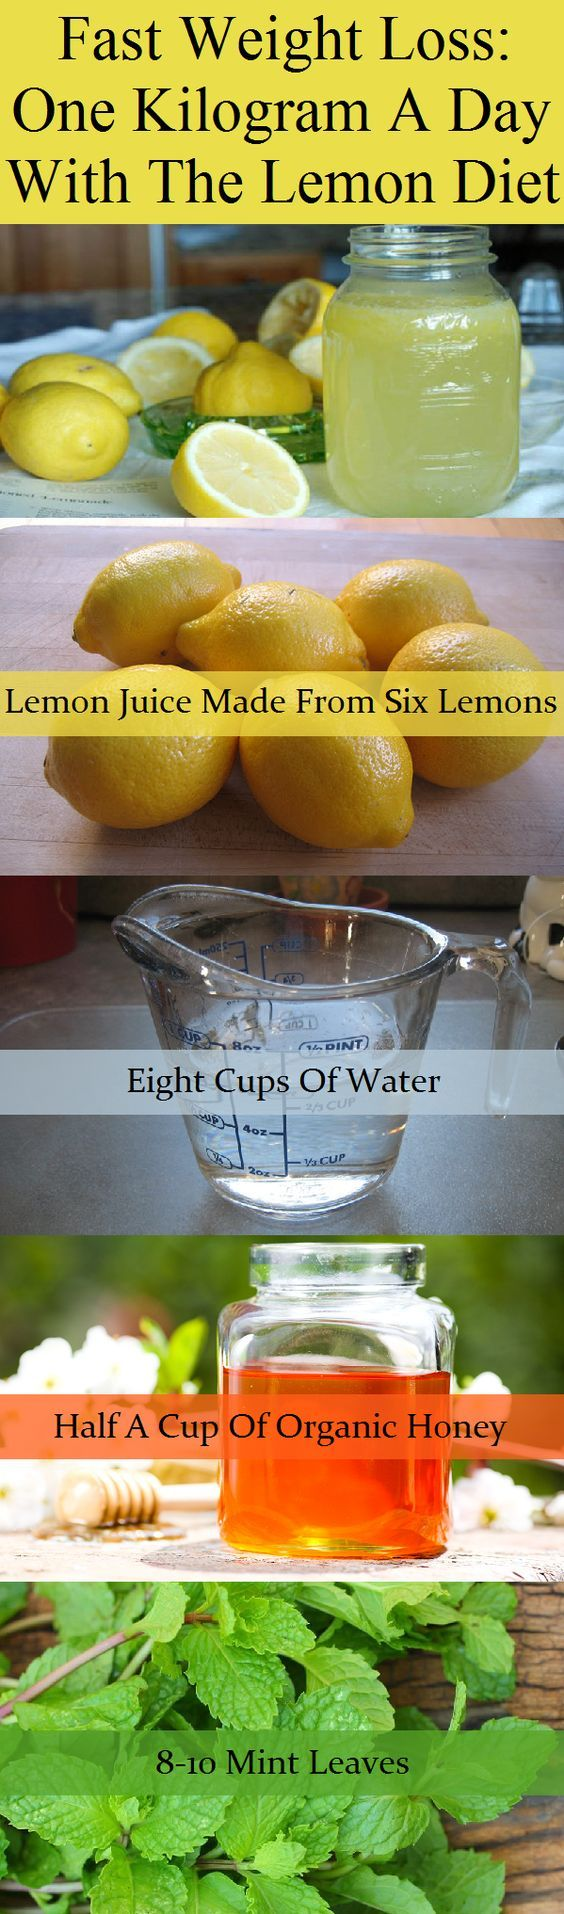 Fast Weight Loss One Kilogram A Day With The Lemon Diet-Ingredients:Lemon juice (made from six lemons).Eight cups of water.3-4 ice cubes.Half a cup of organic honey.8-10 mint leaves.Instructions:.Place the water in a large clean bowl and let it heat on low heat. Keep in mind that you must warm it a little bit. Don't make it too hot or boil it. It is ideal to bring it to 60 degrees or slightly less. After that, you must pour the...